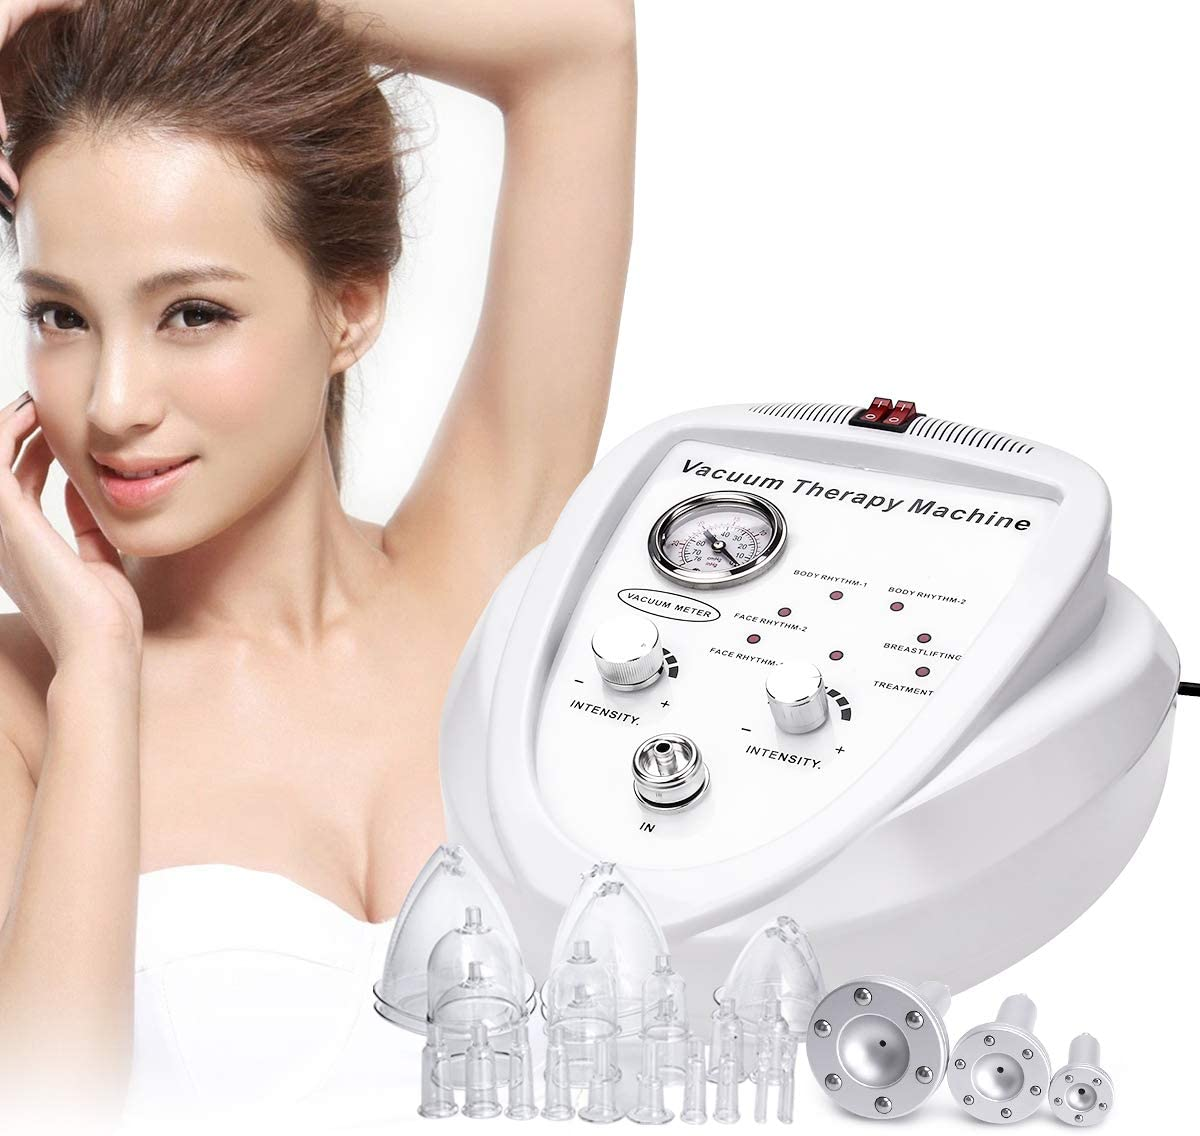 Titoe Vacuum Therapy Massage Body Shaping Lymph Drainage Spa Skin Rejuvenation Machine with 24 Cups and 3 Pumps